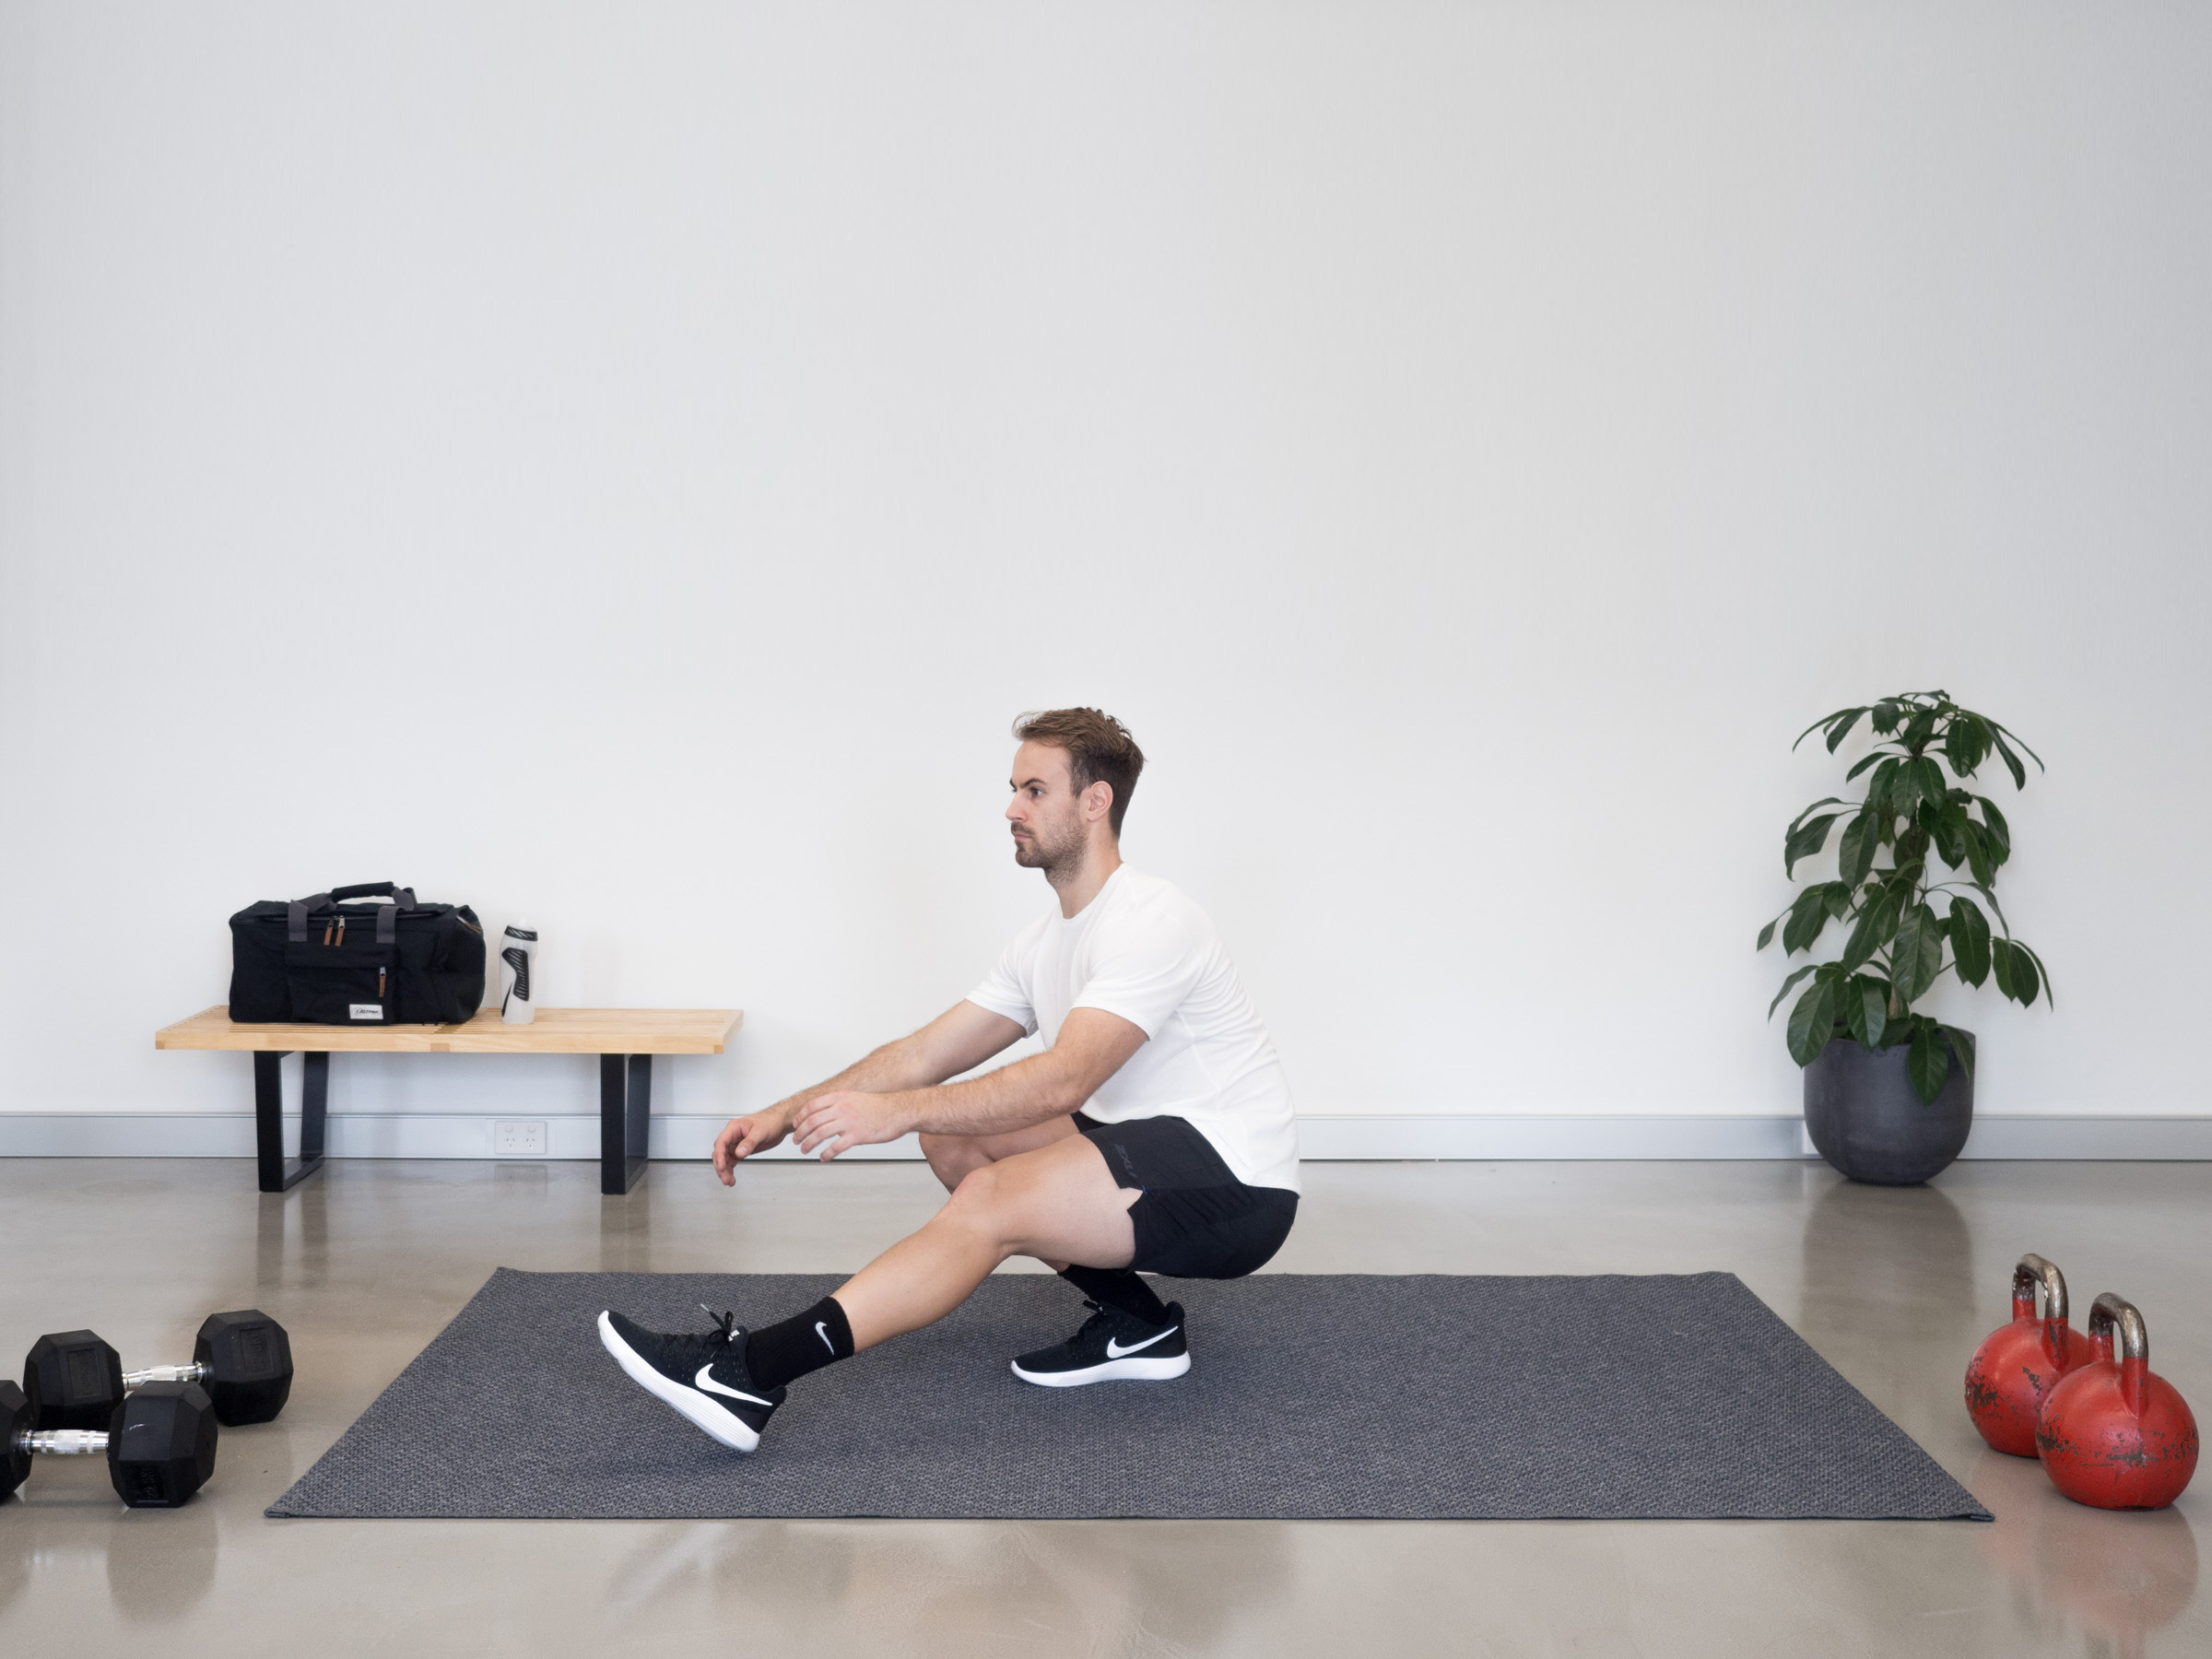 A Simple Fitness Routine When You're Low On Space & Equipment